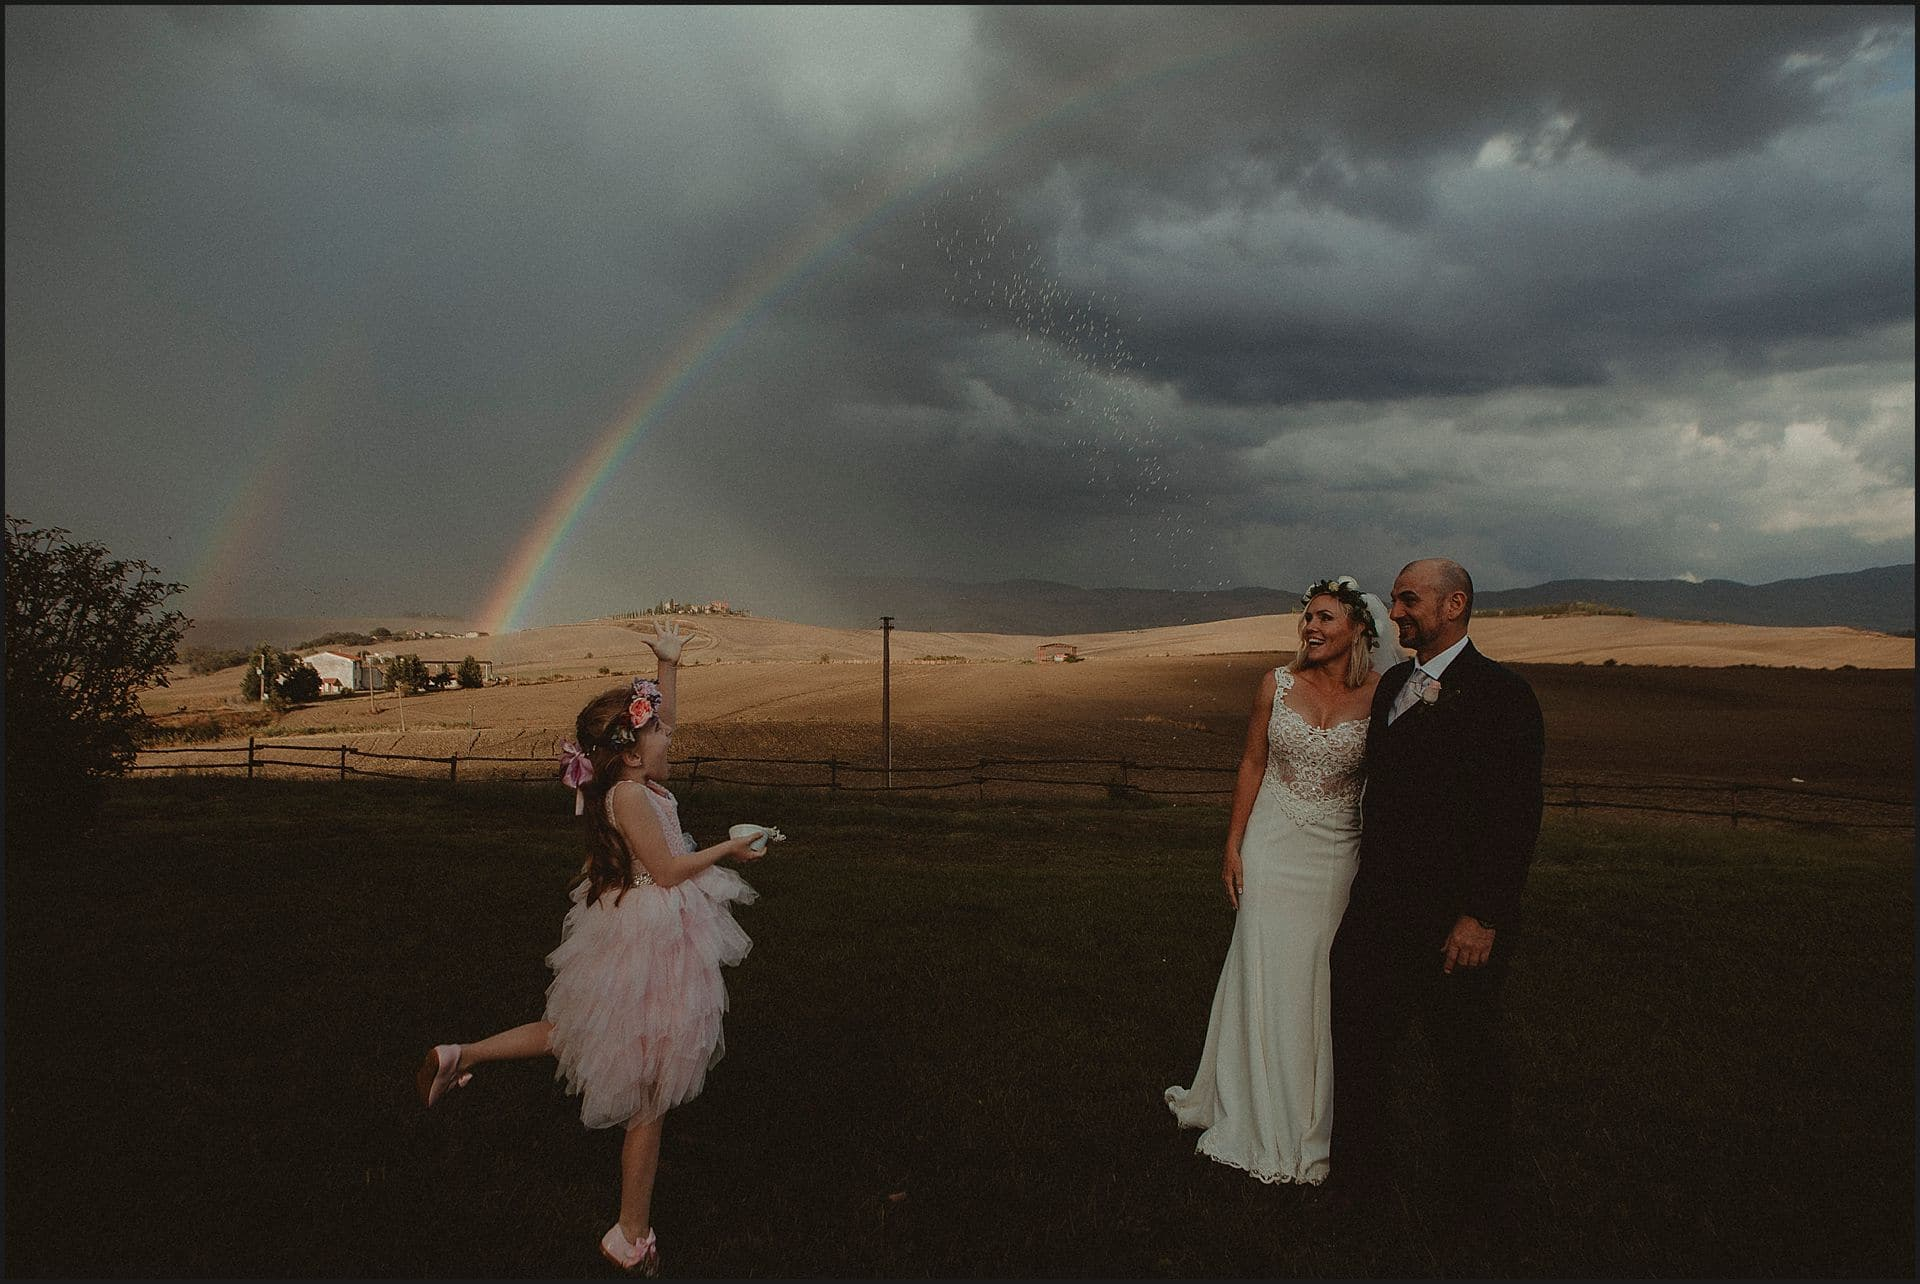 rainbow, rice tossing, maid of honor, bride, groom, happy moment, destination wedding photographer, locanda in tuscany, italy